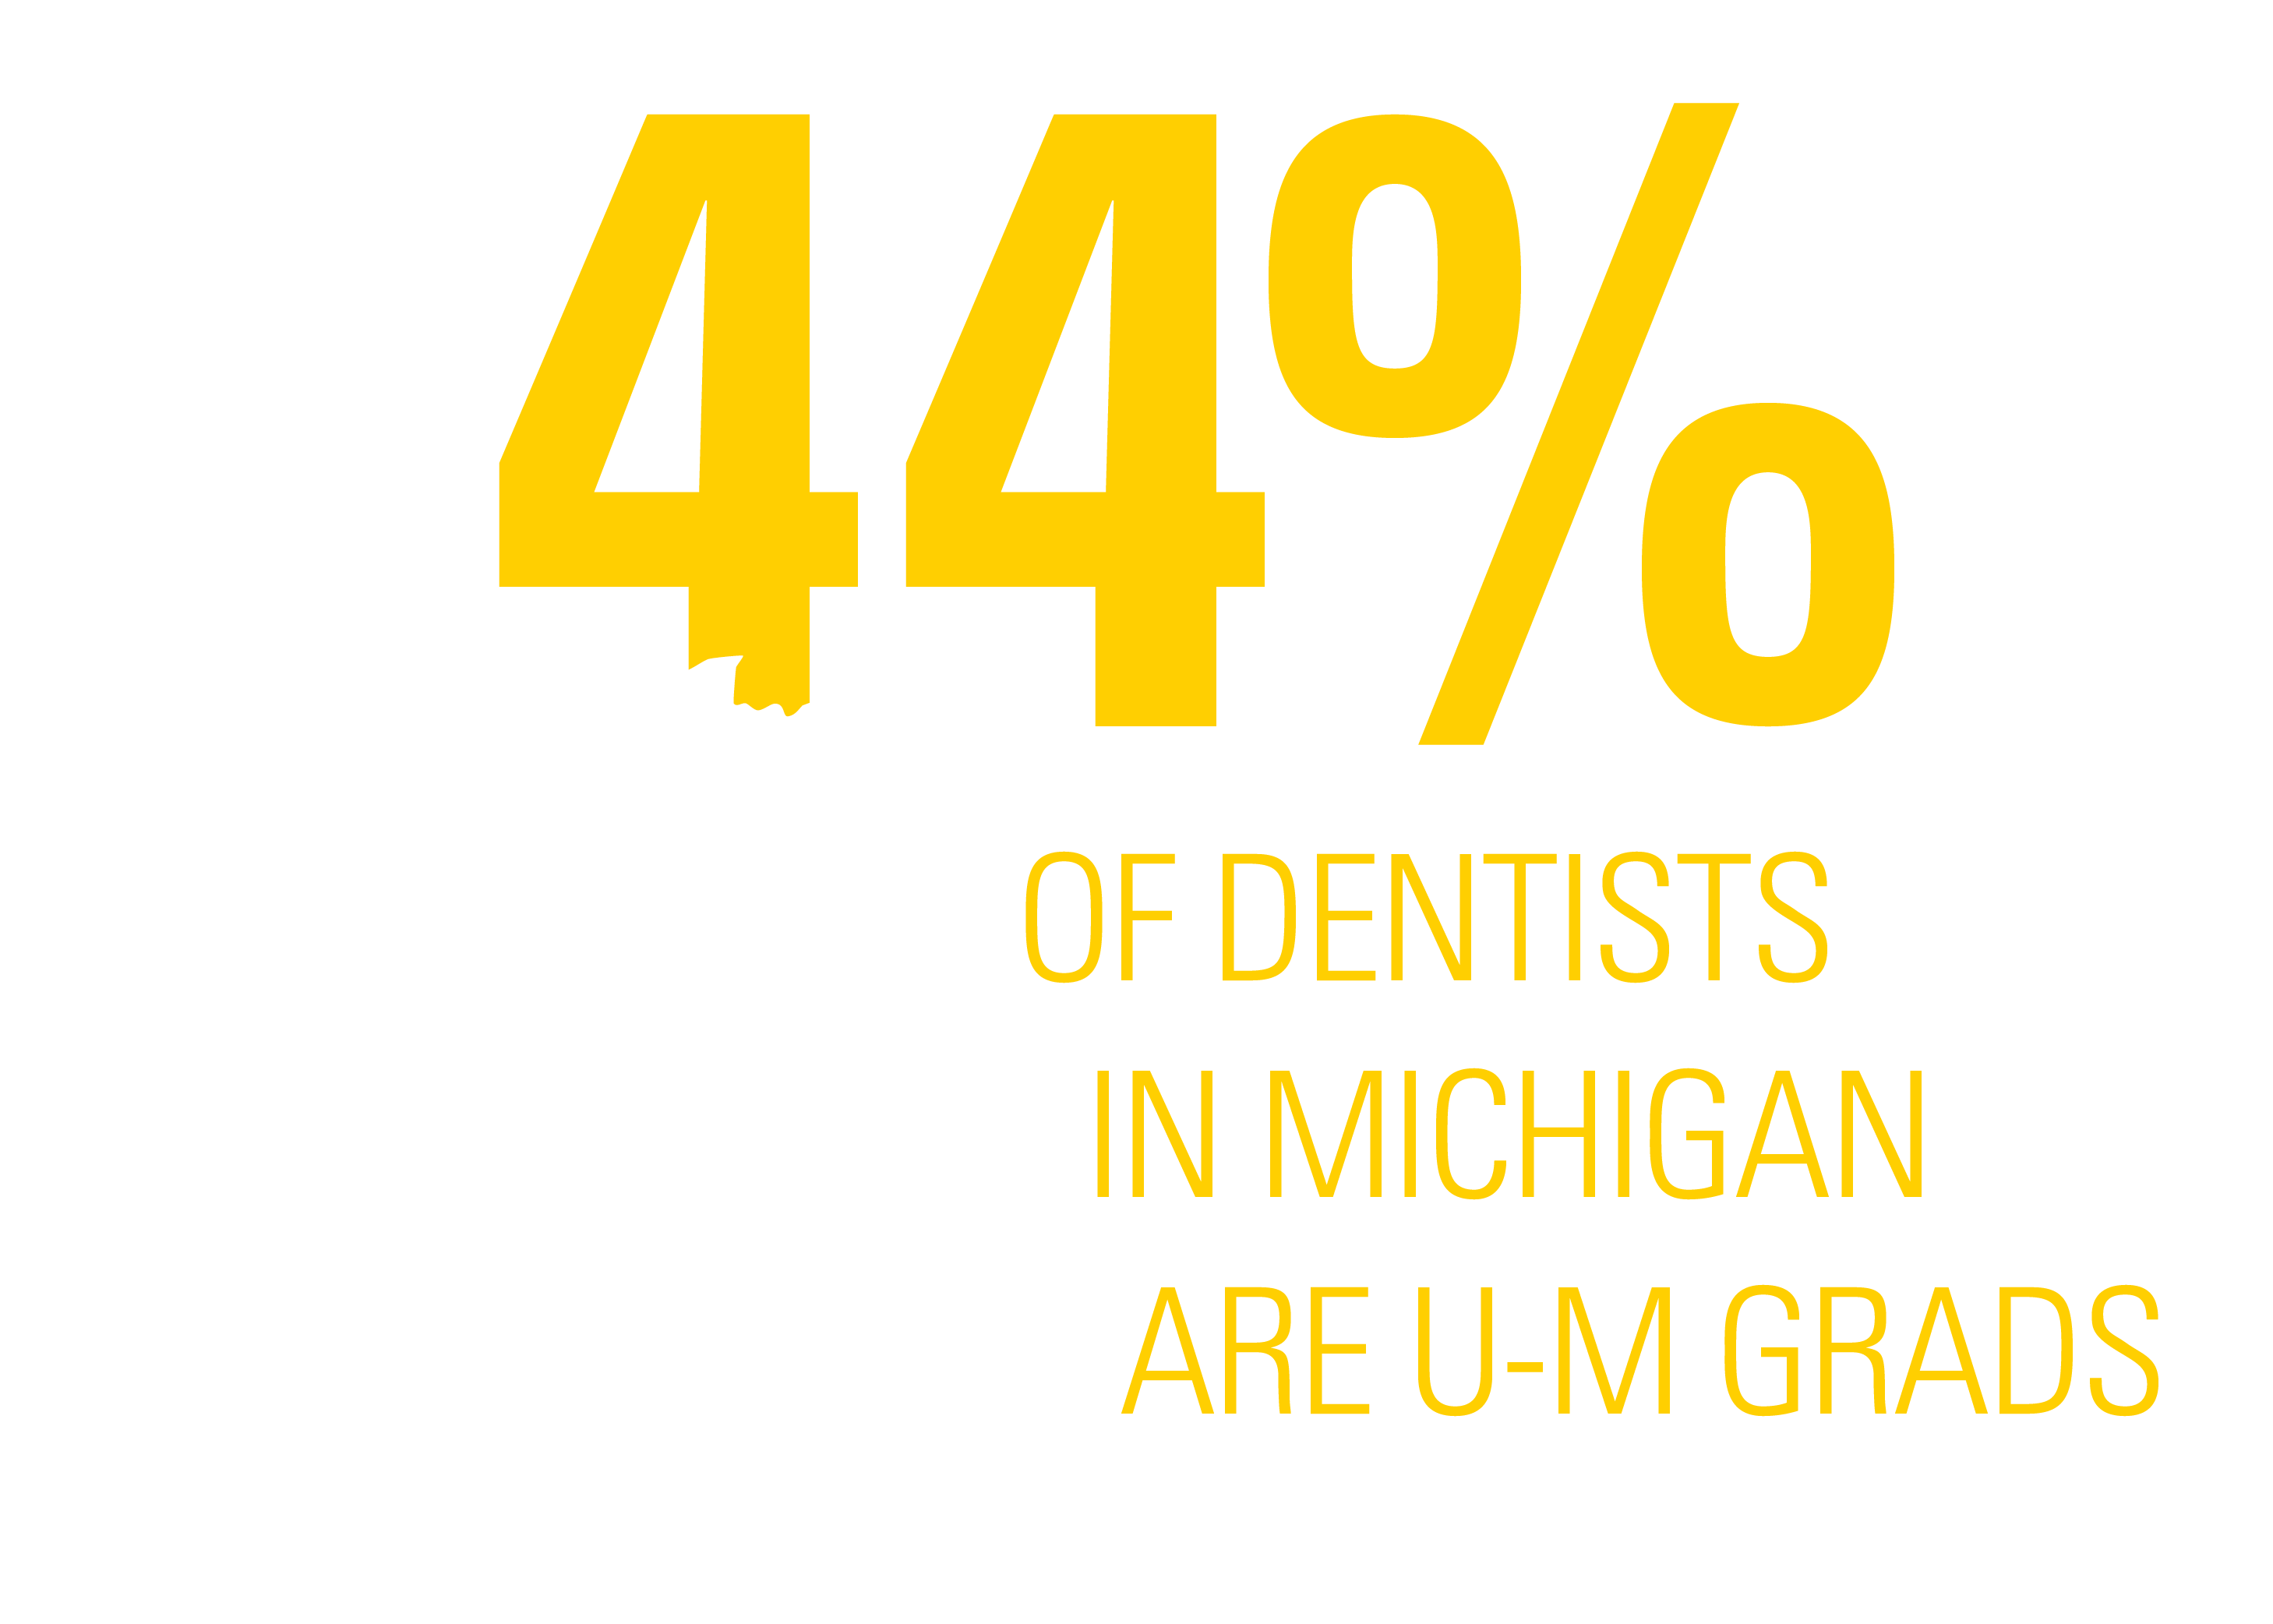 44% of Dentists in Michigan are U-M Grads